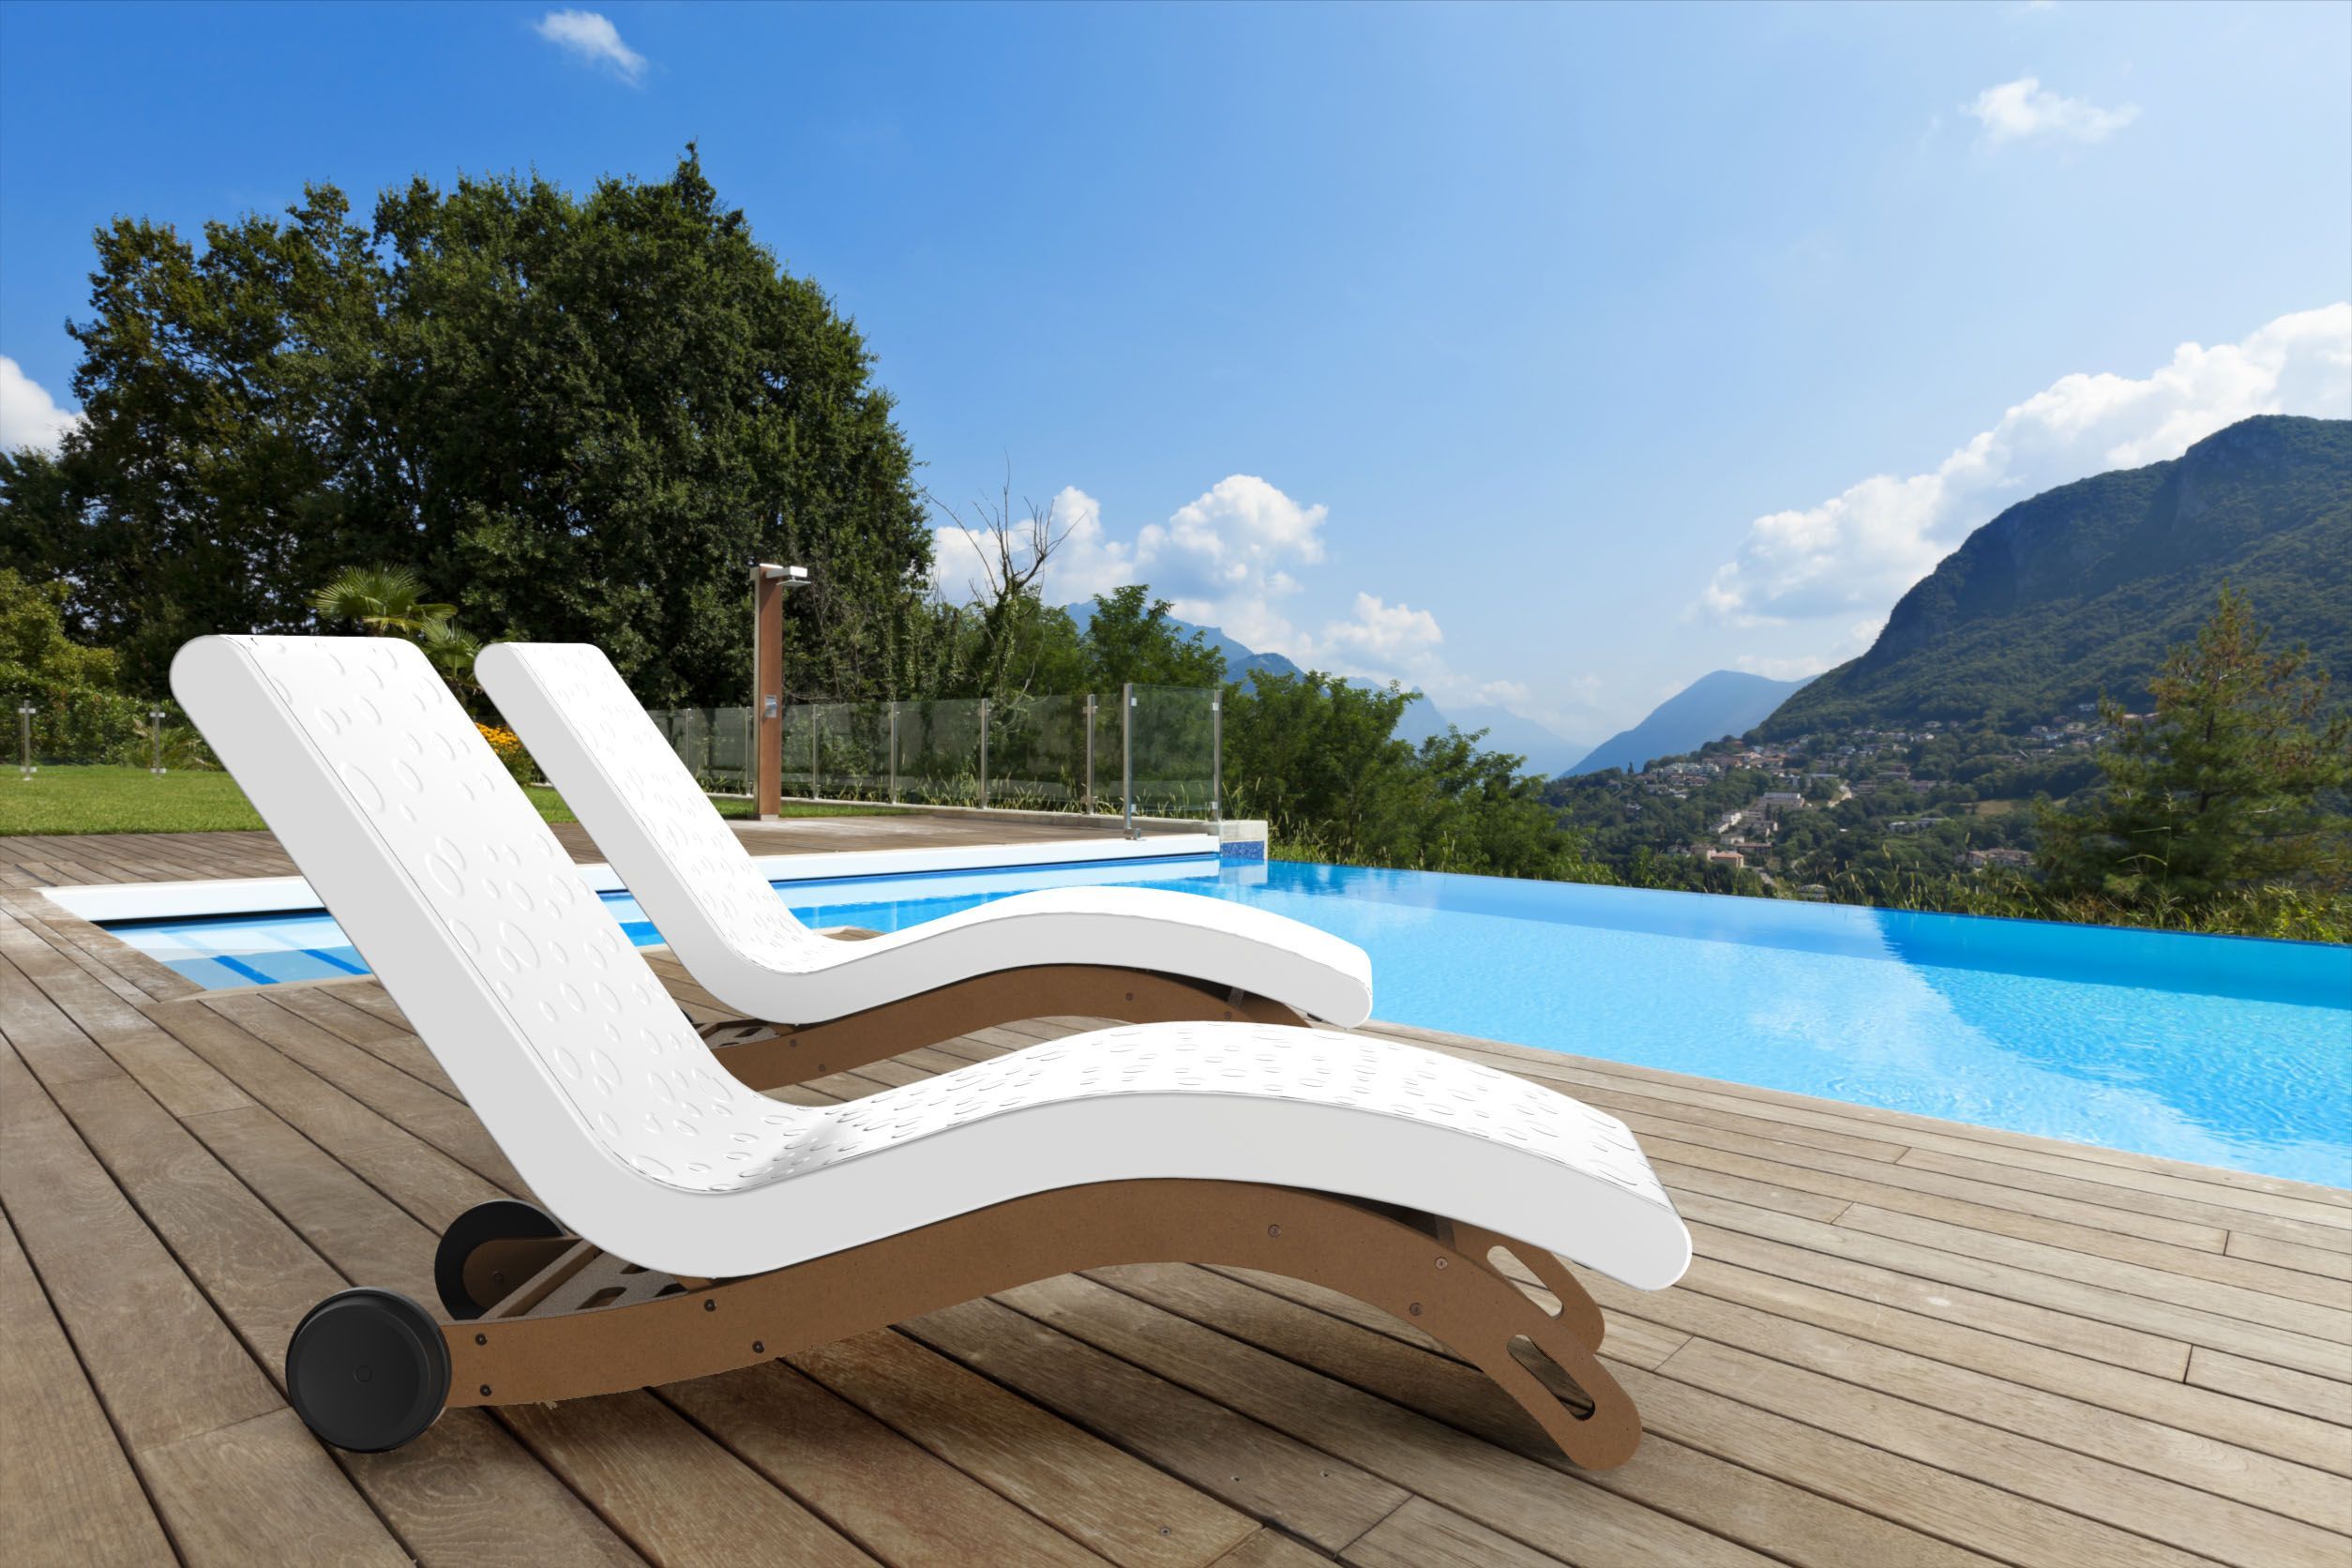 Chaise Longue Siesta Transat Lounge Chairs Products Lounges Beach